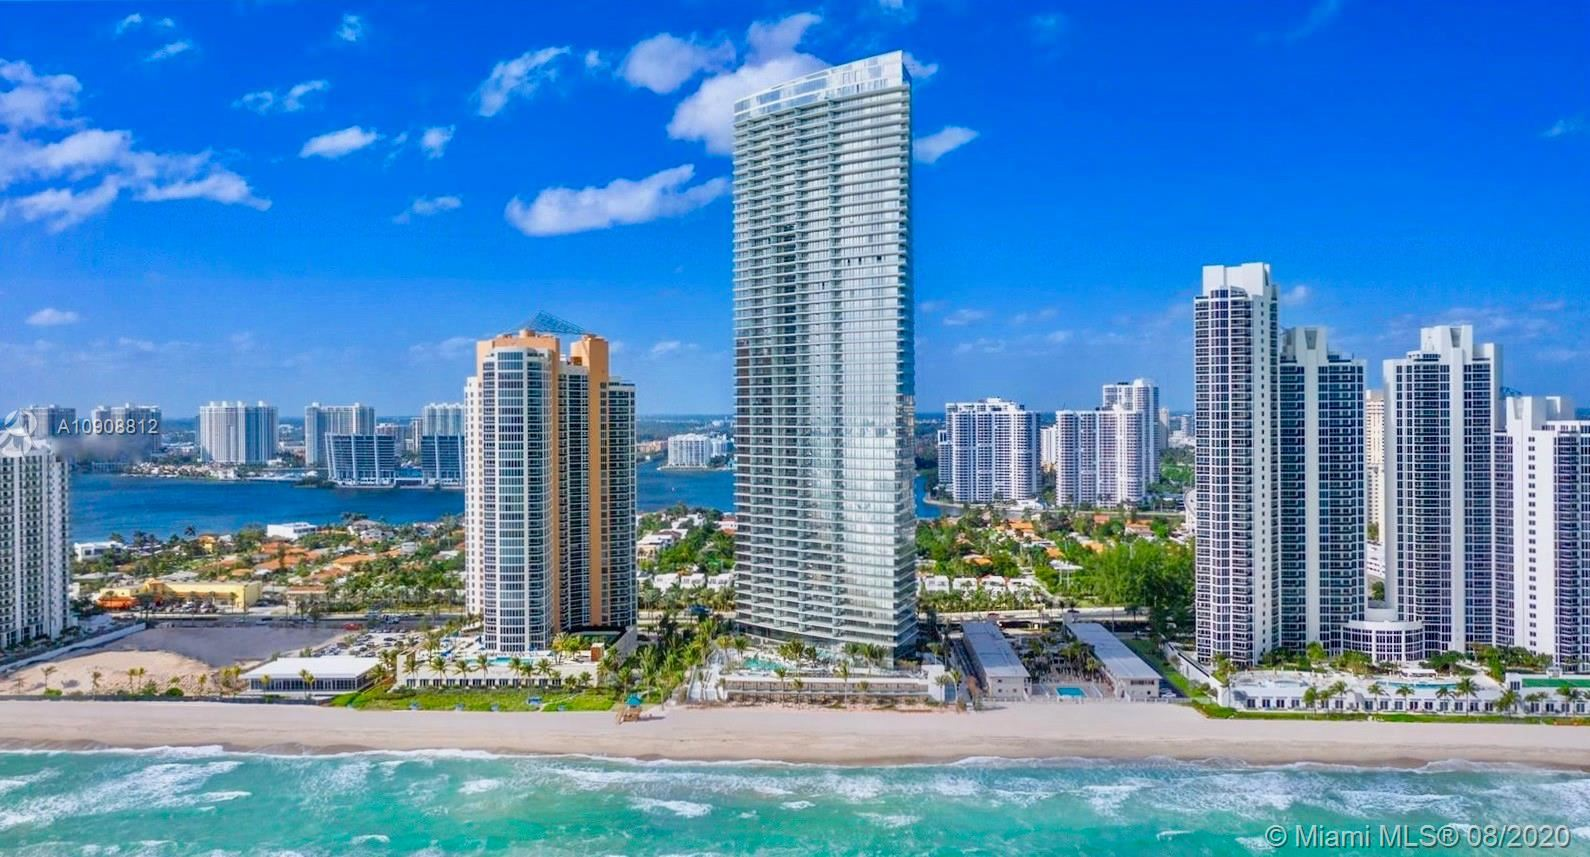 18975 Collins Ave #2902, Sunny Isles, FL 33160 - #: A10908812